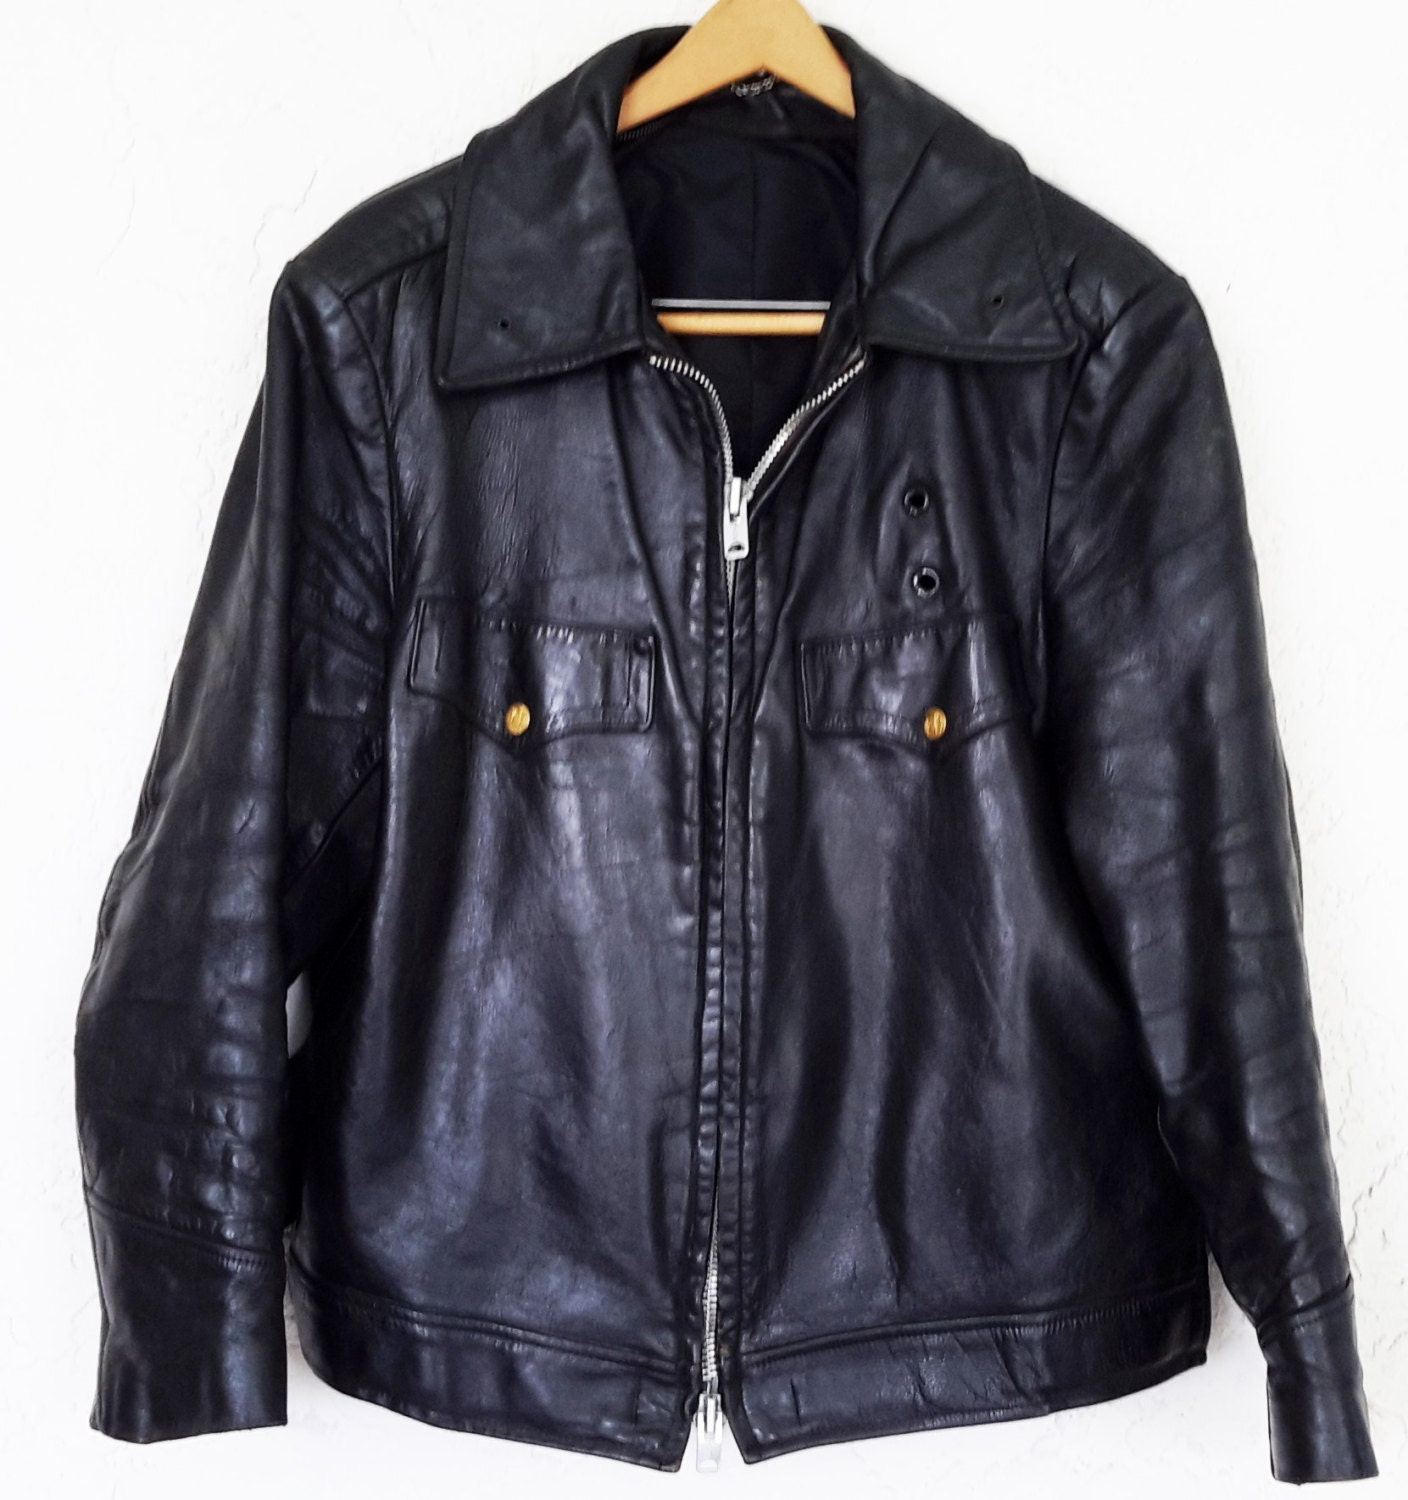 Nypd leather jacket